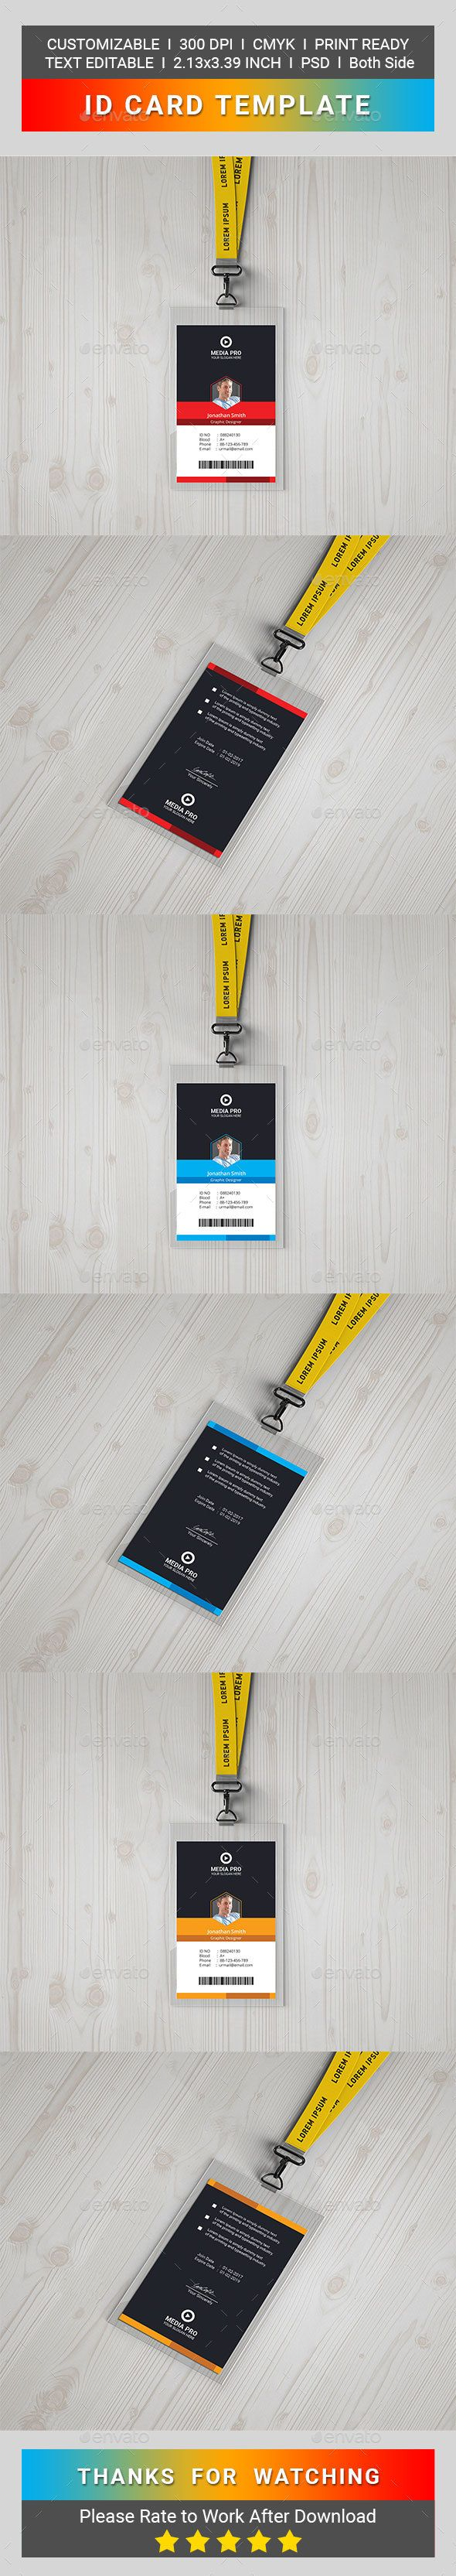 83 best ID Card Design Templates images on Pinterest | Print ...